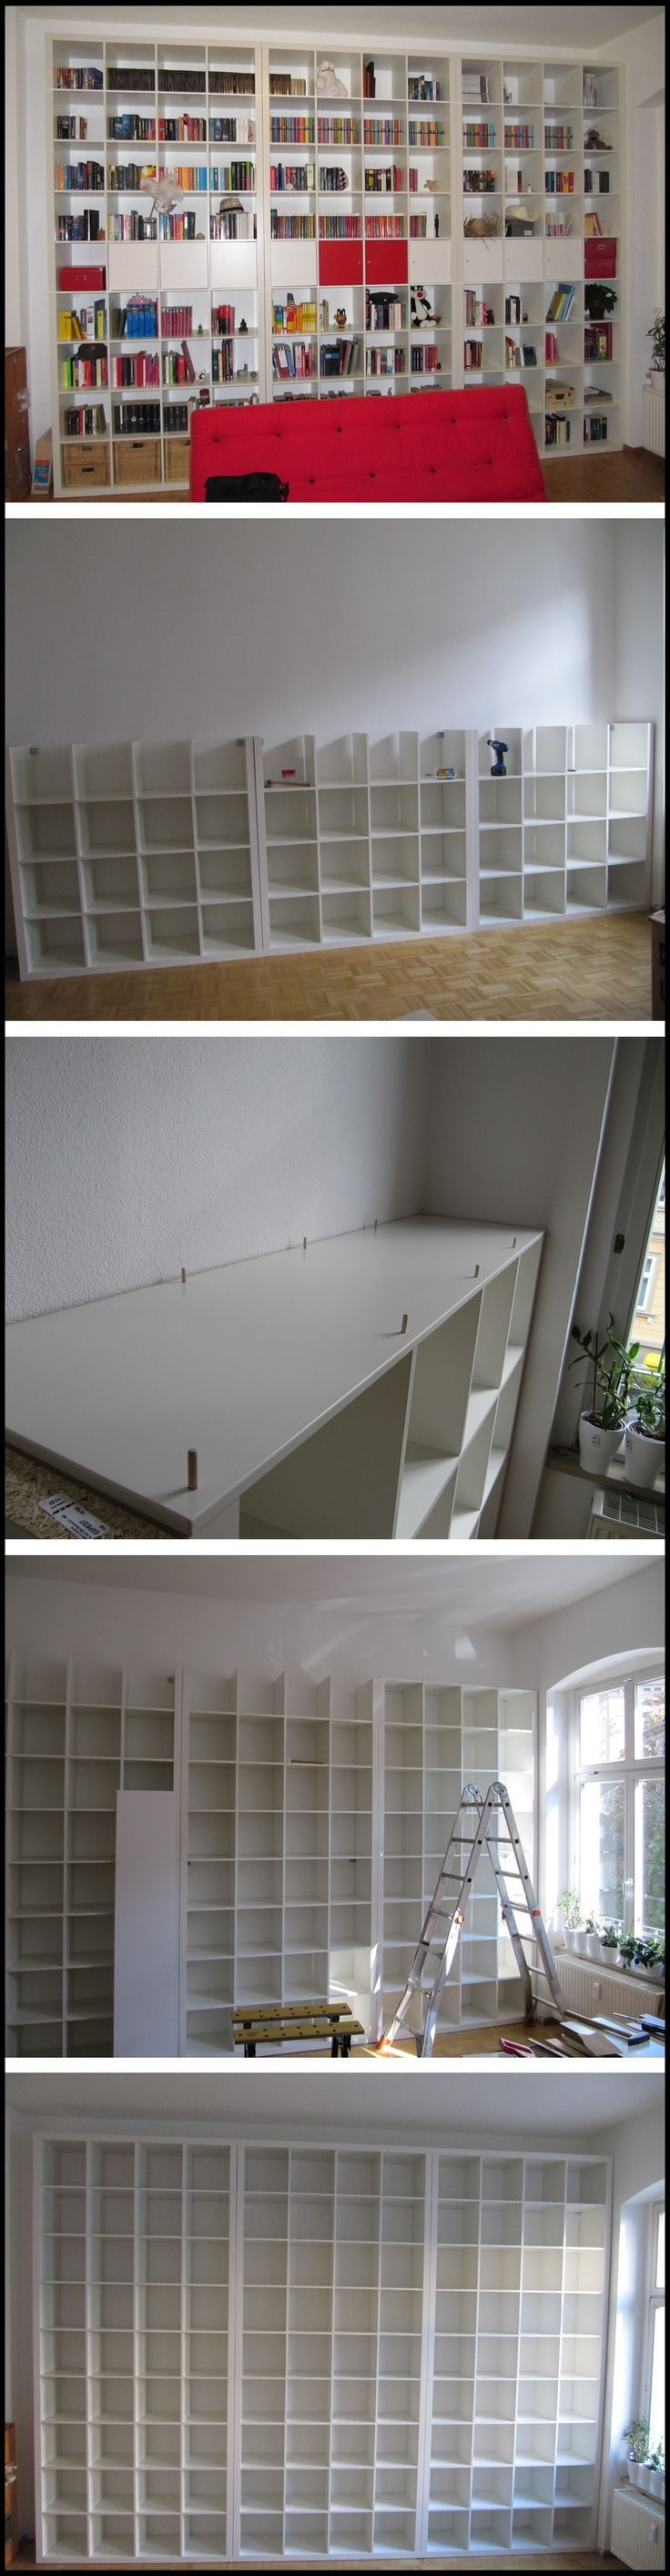 228 best images about Ikea Expedit & Kallax hacks on Pinterest  Shelves, Craft cabinet and Ikea ...